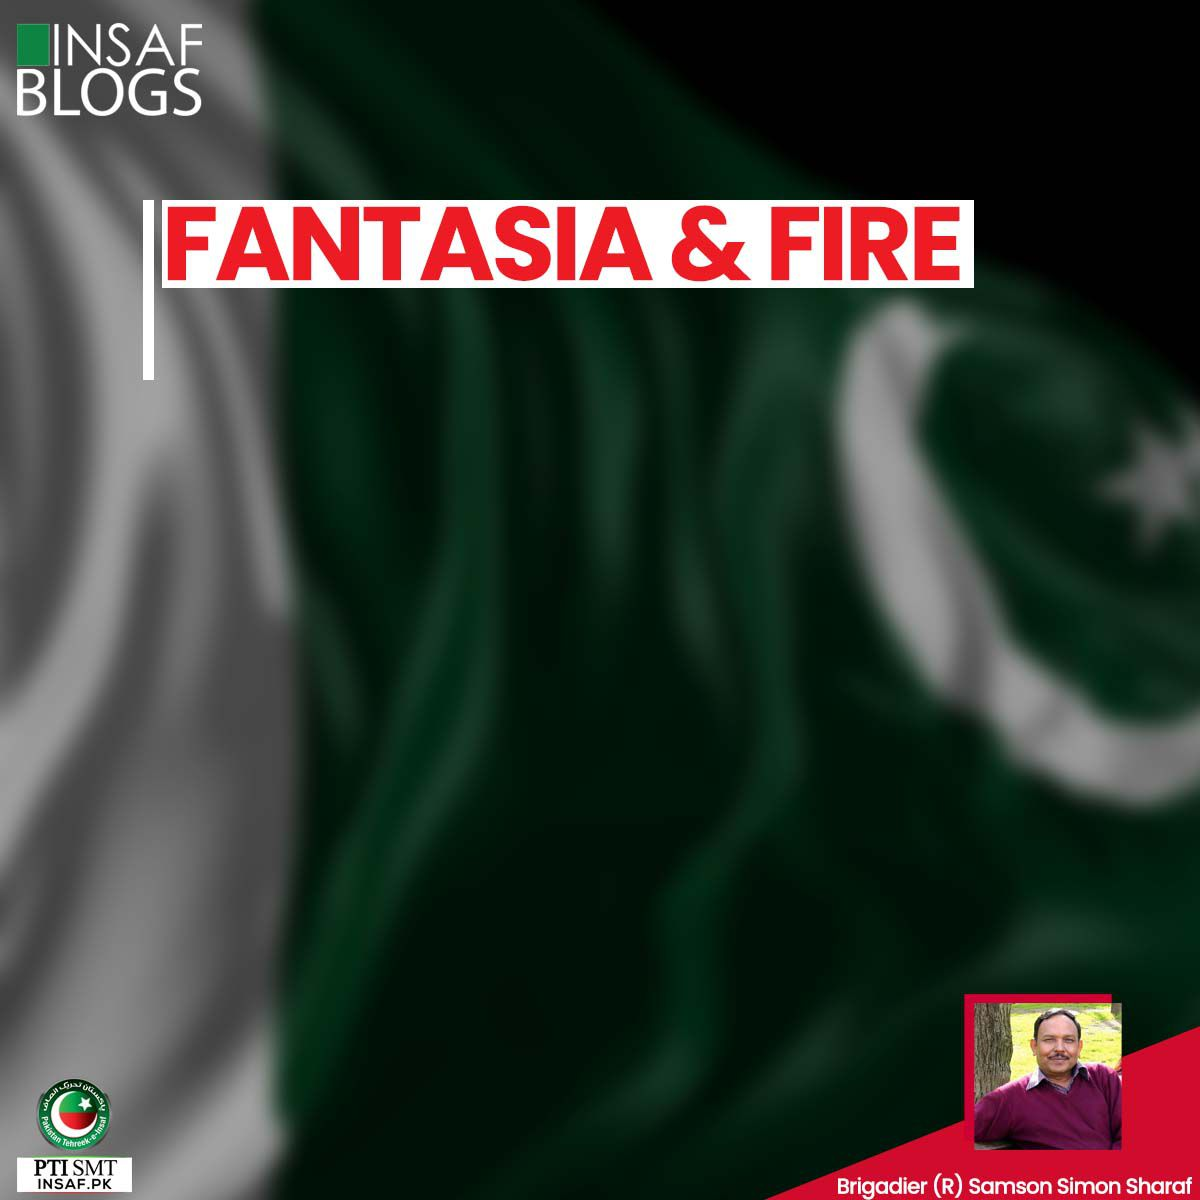 FANTASIA-FIRE-insaf-blog